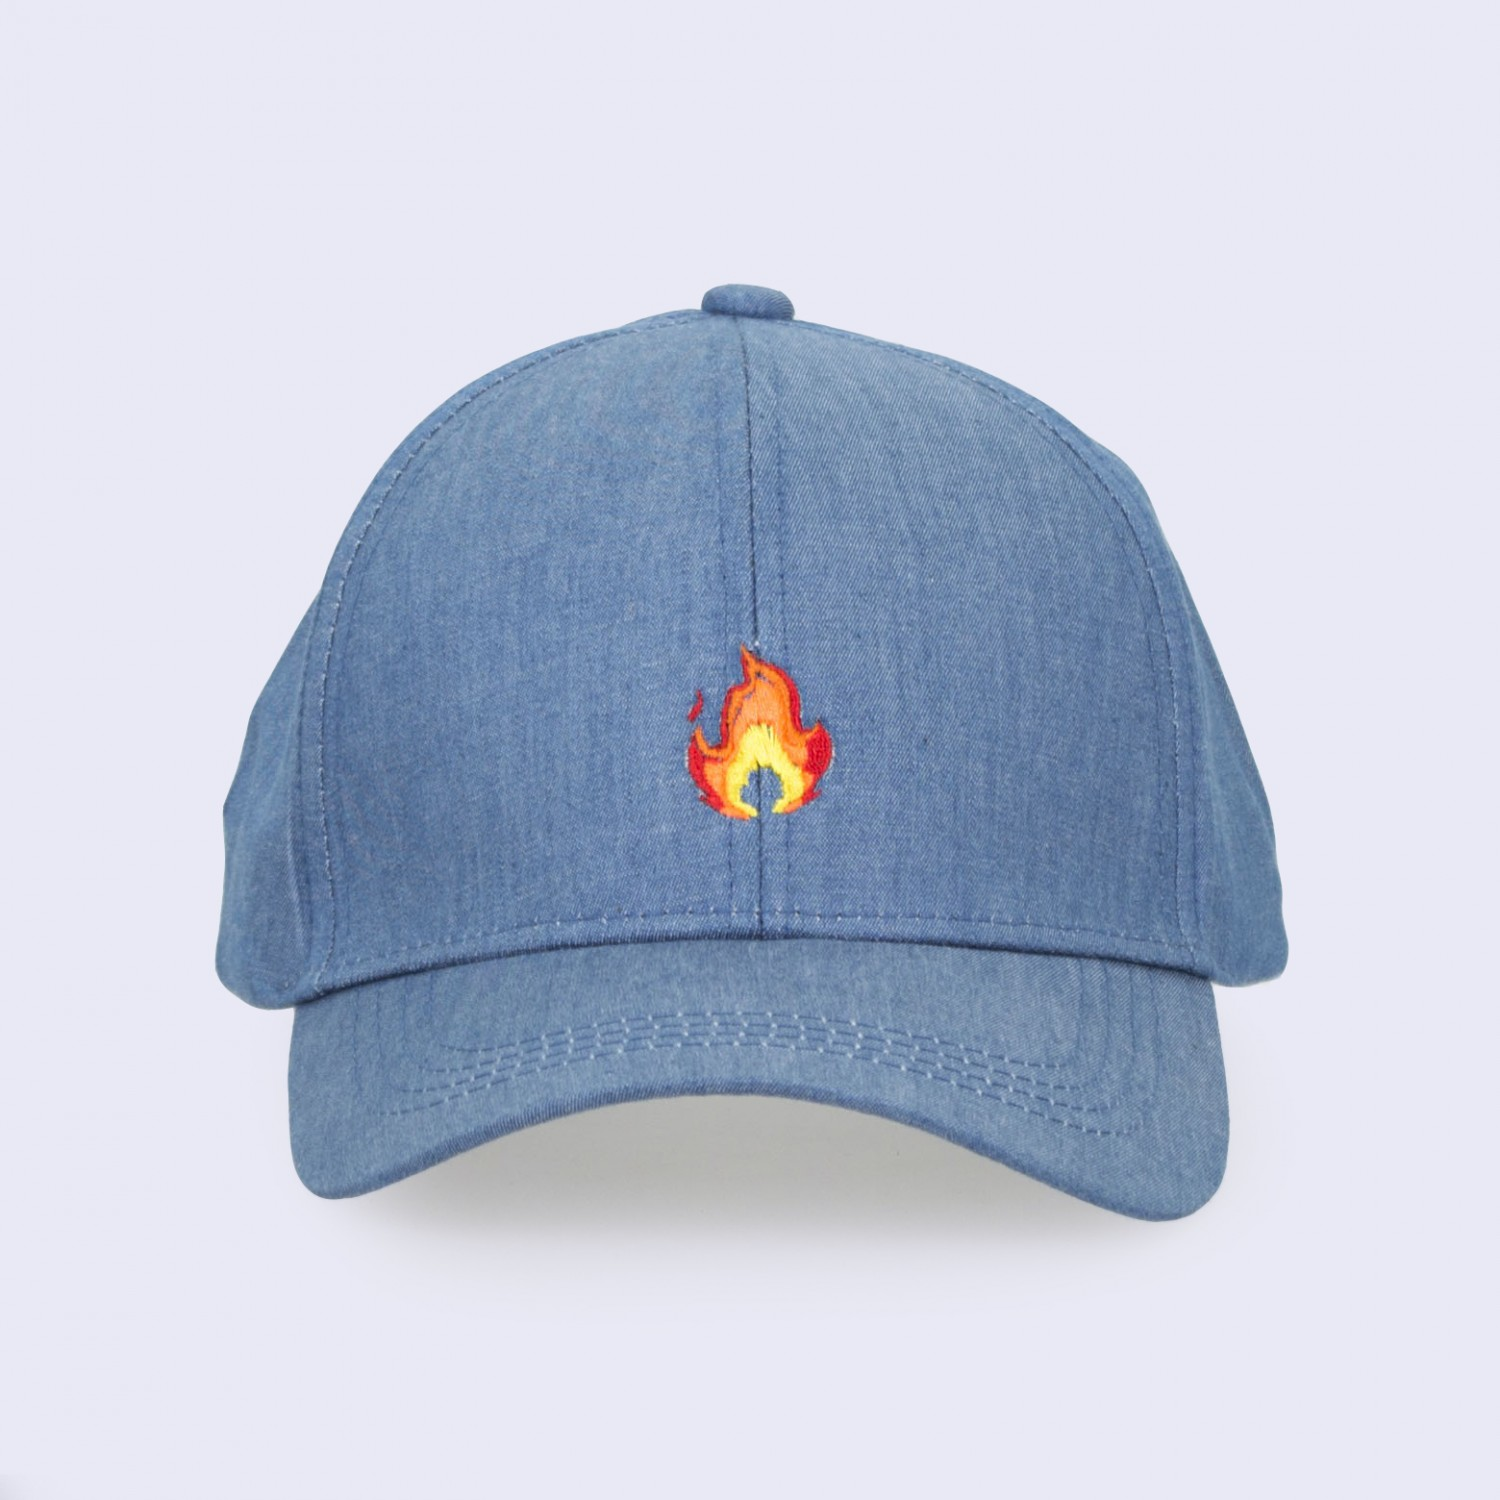 Кепка The Dollar Club - Fire Cap Lite Denim